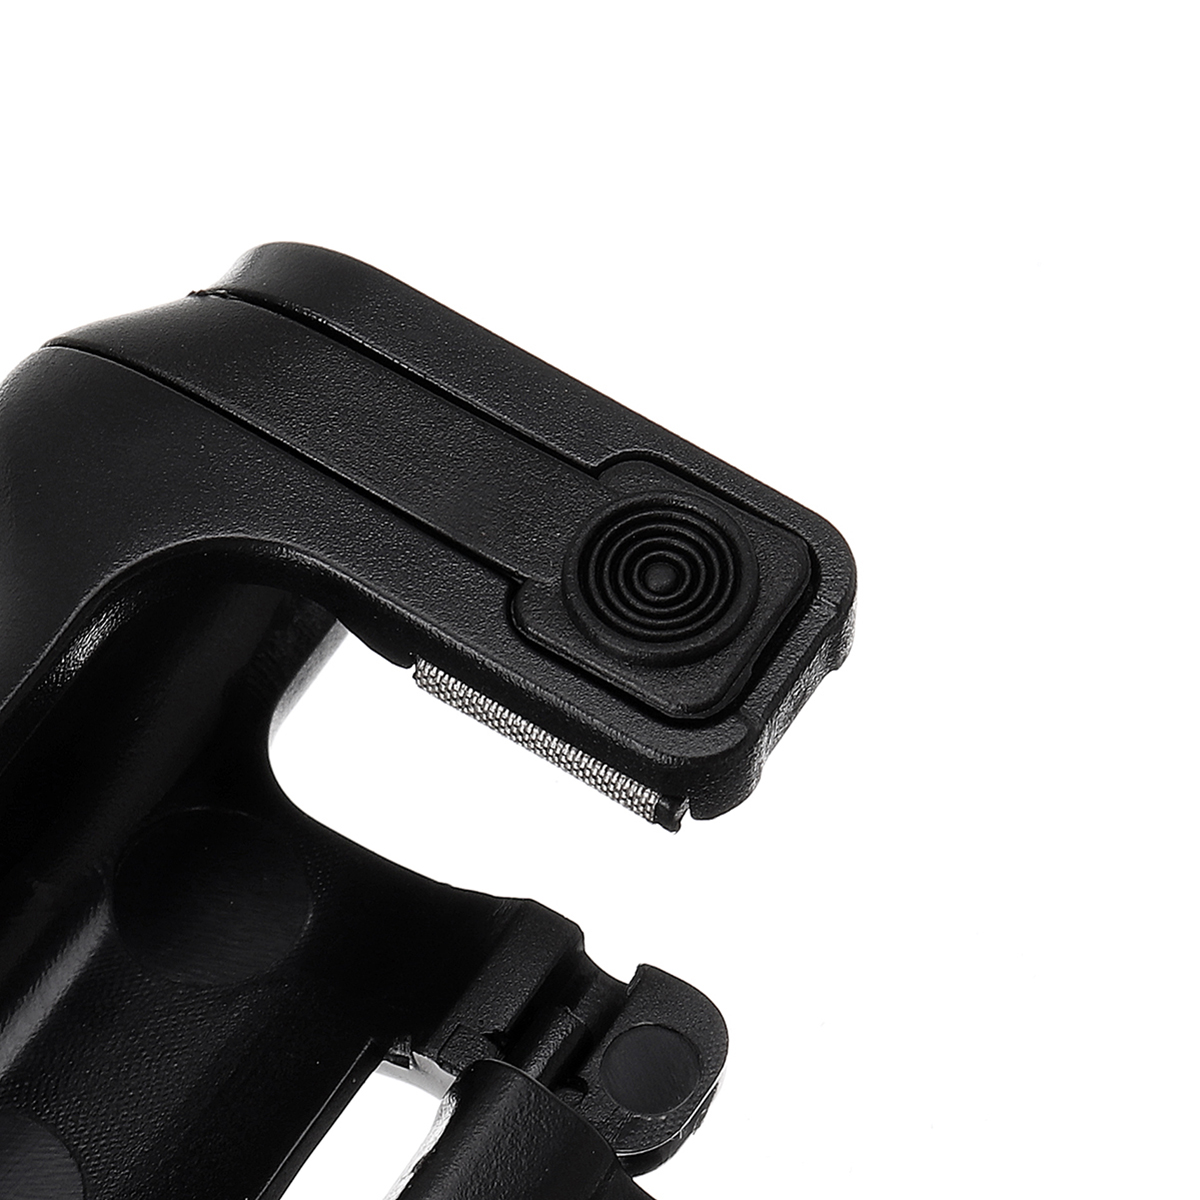 L1 R1 Fire Trigger Shooting Asisstant Aim Tool Controller with 2x Magnification Lens for Mobile Game